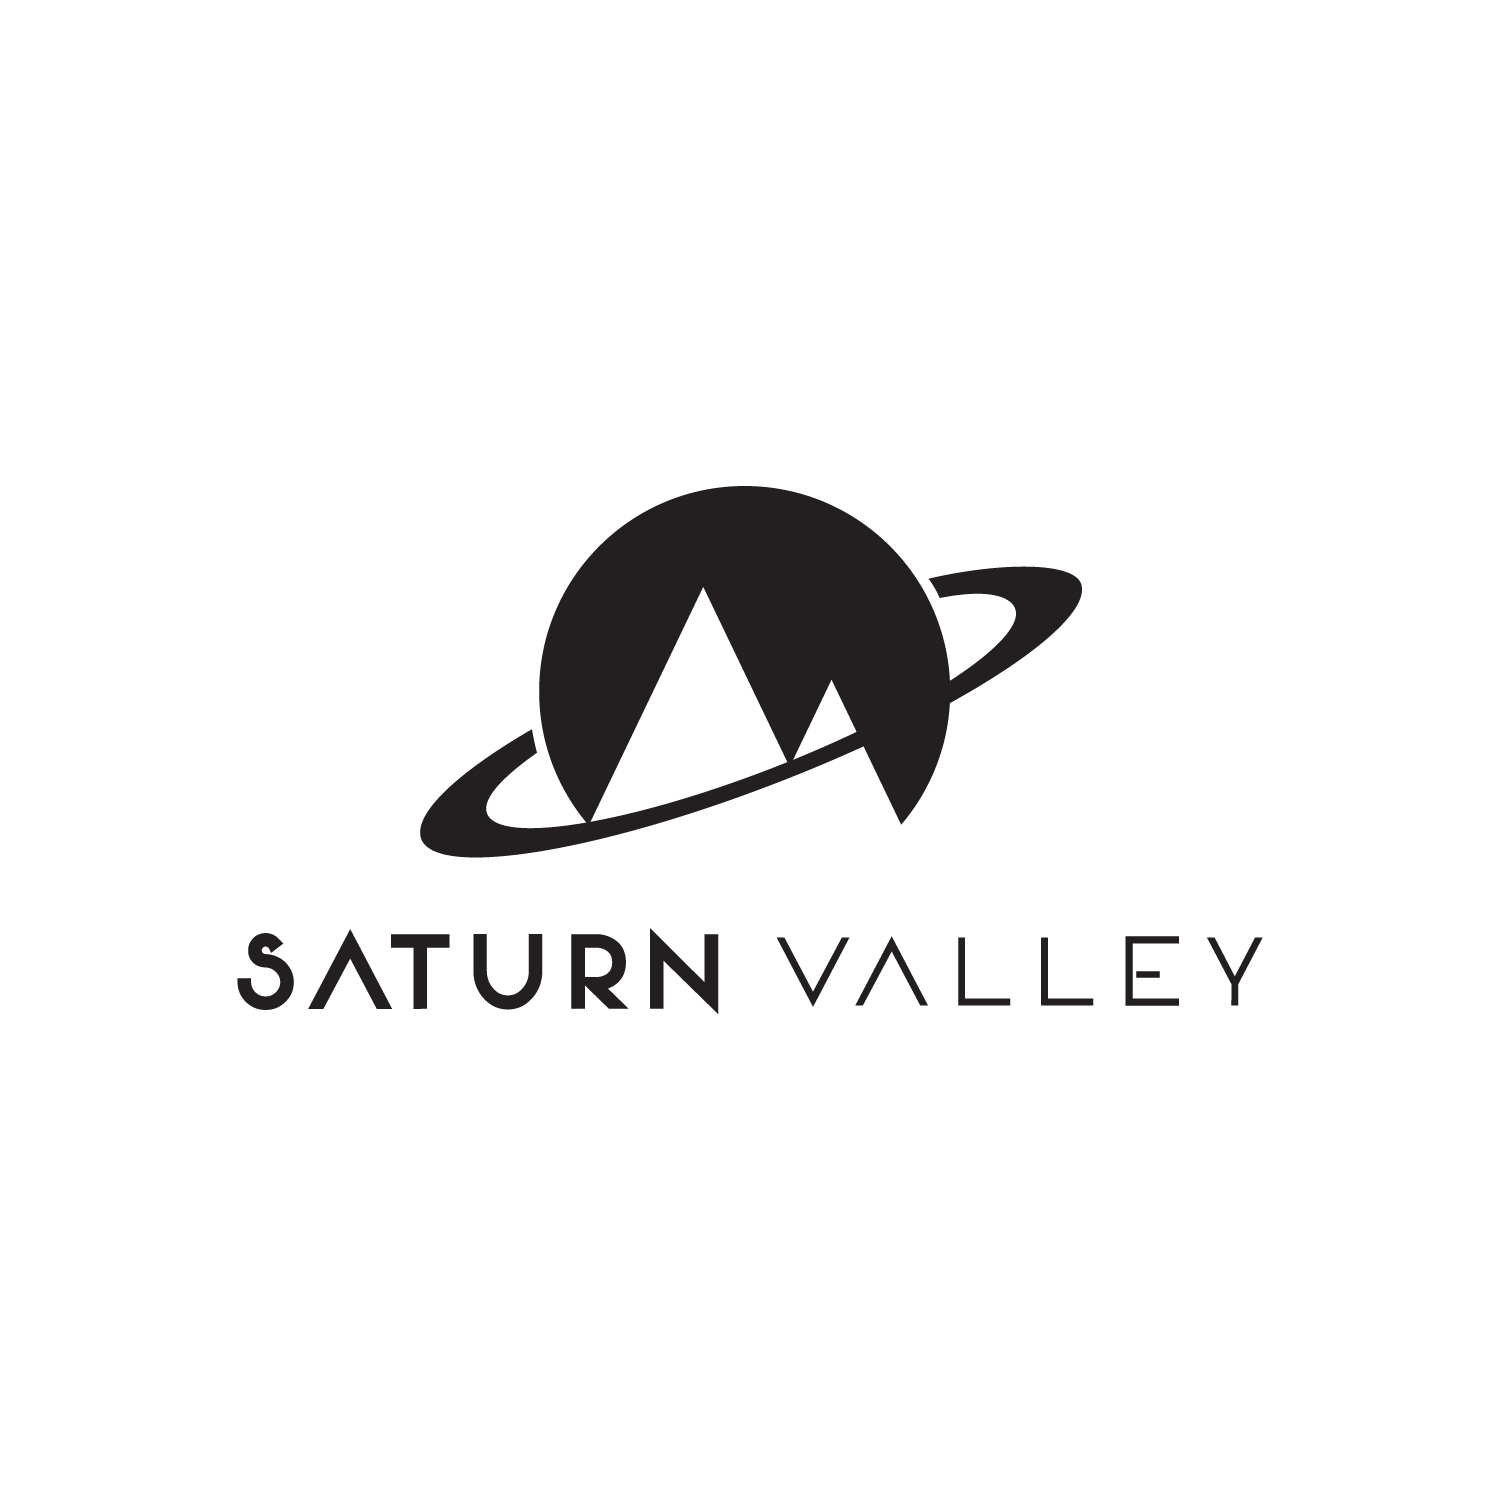 Saturn Valley